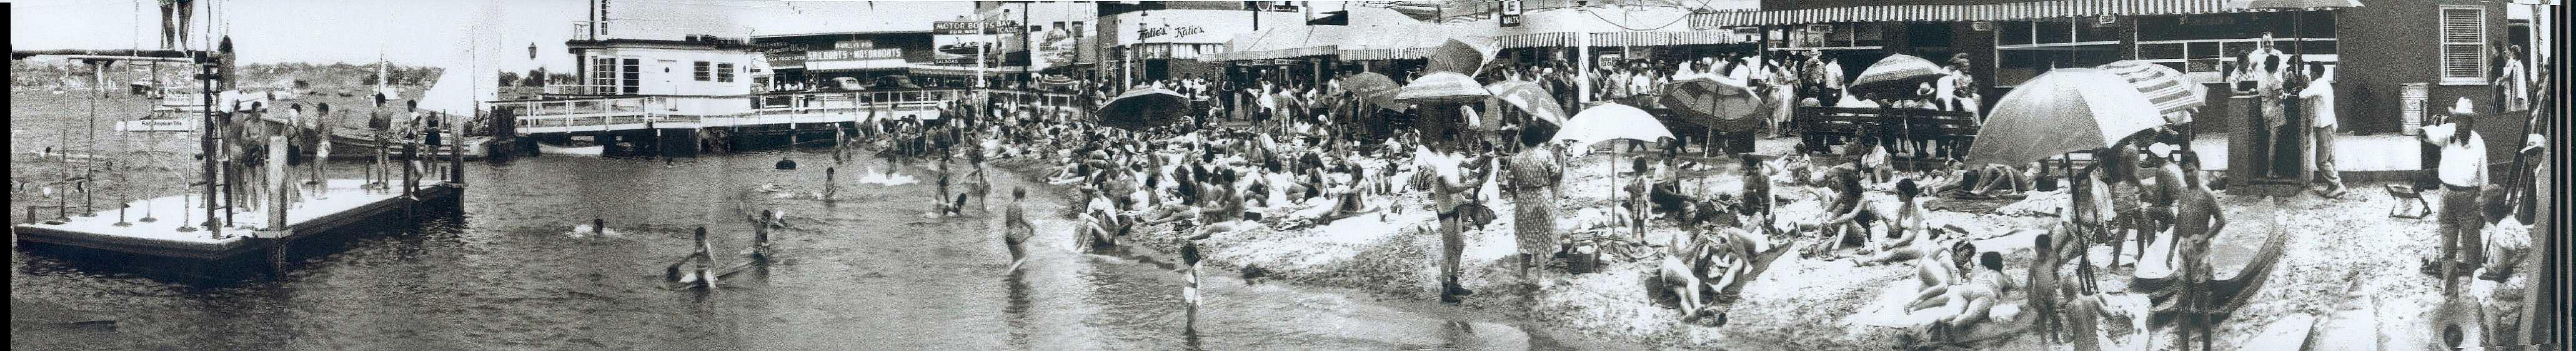 Balboa Fun Zone Bay 1949